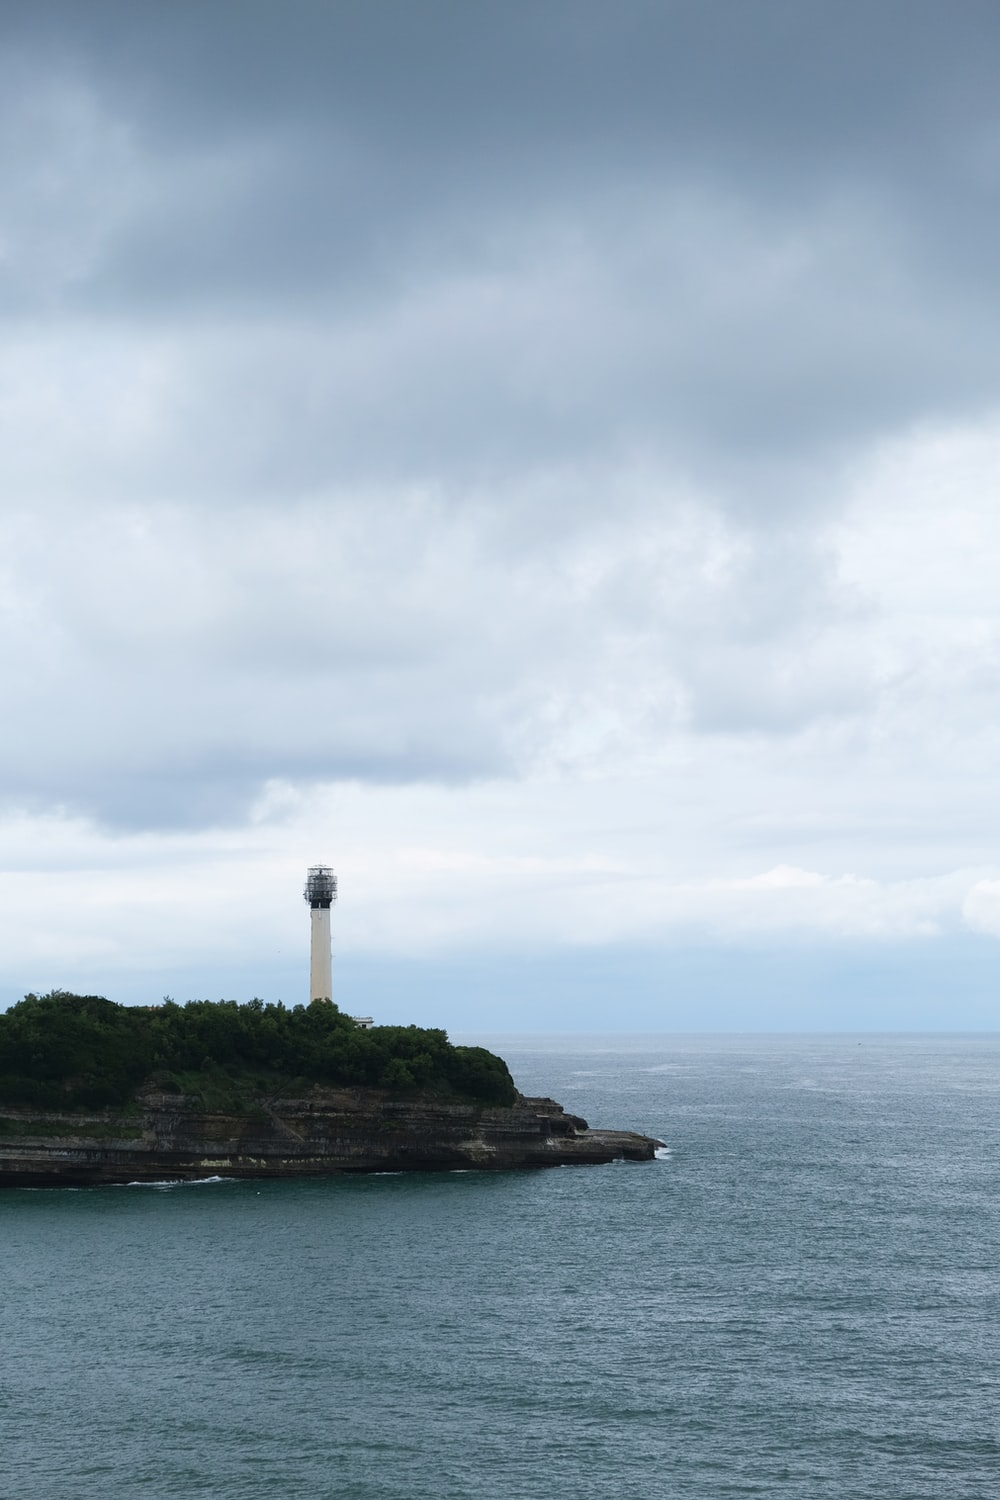 white lighthouse on top of green island surrounded by body of water under white clouds during